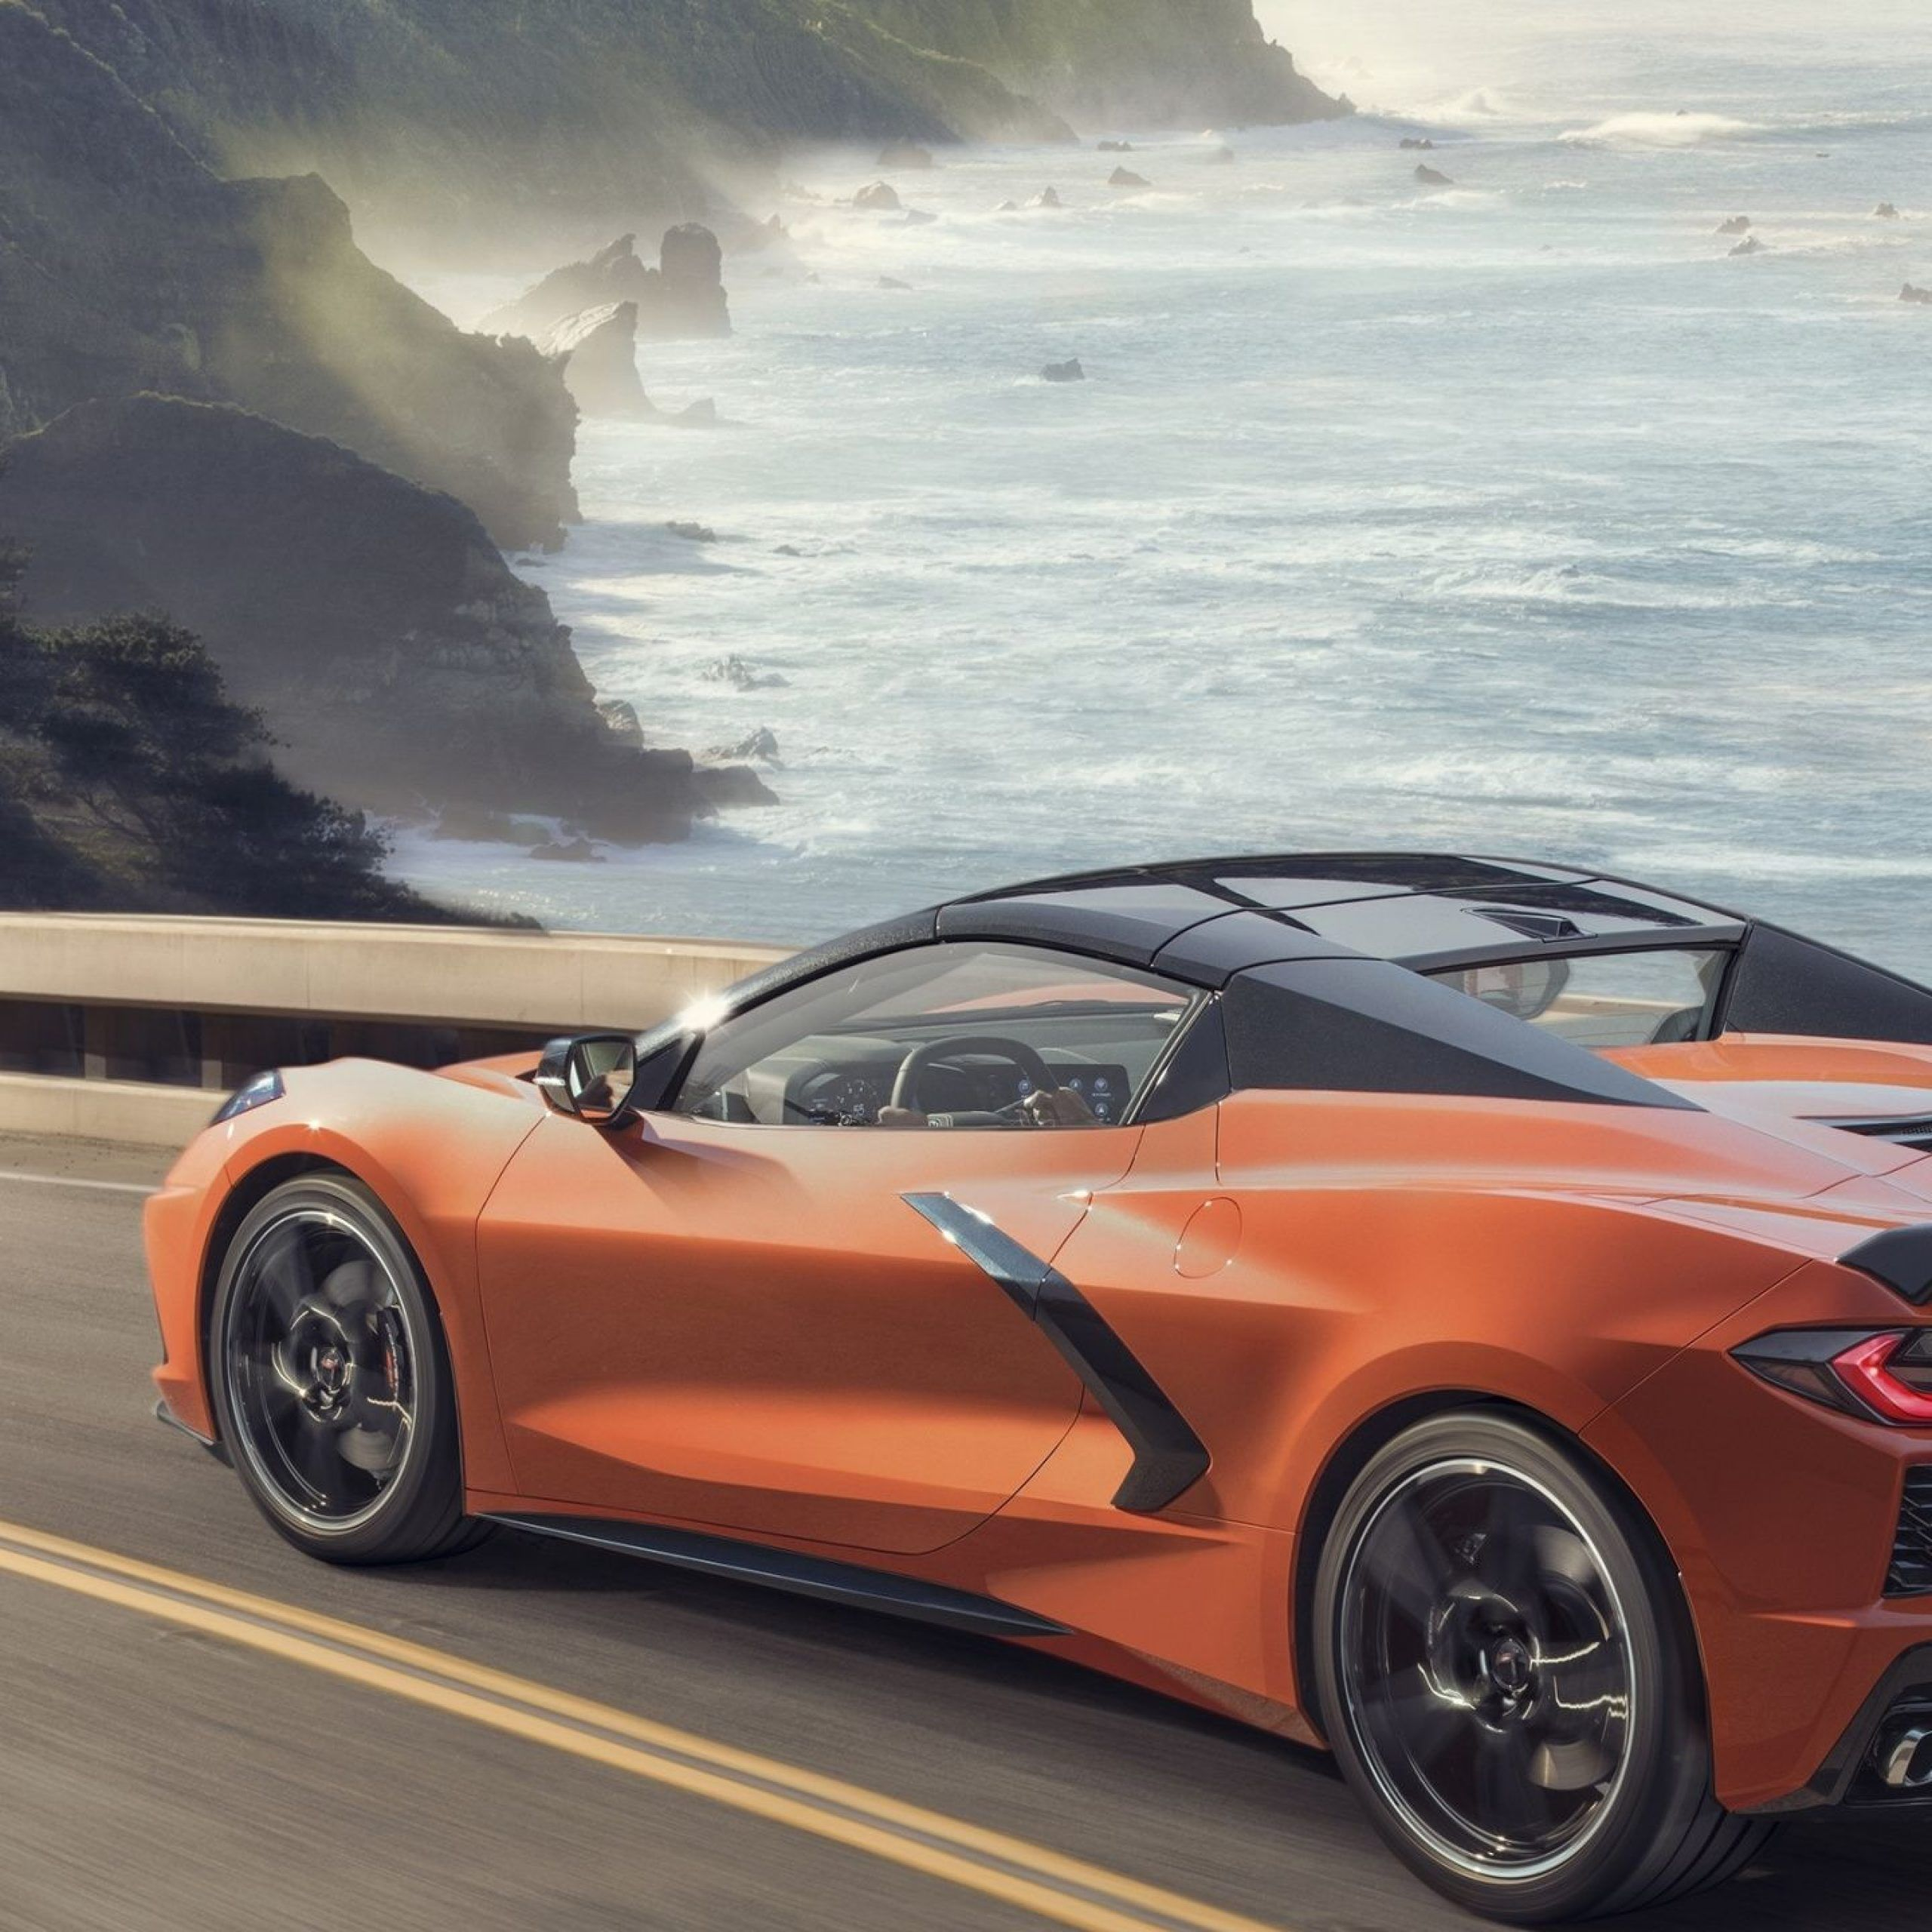 1440x2880 On Road Orange Car Chevrolet Corvette C8 Wallpaper Di 2020